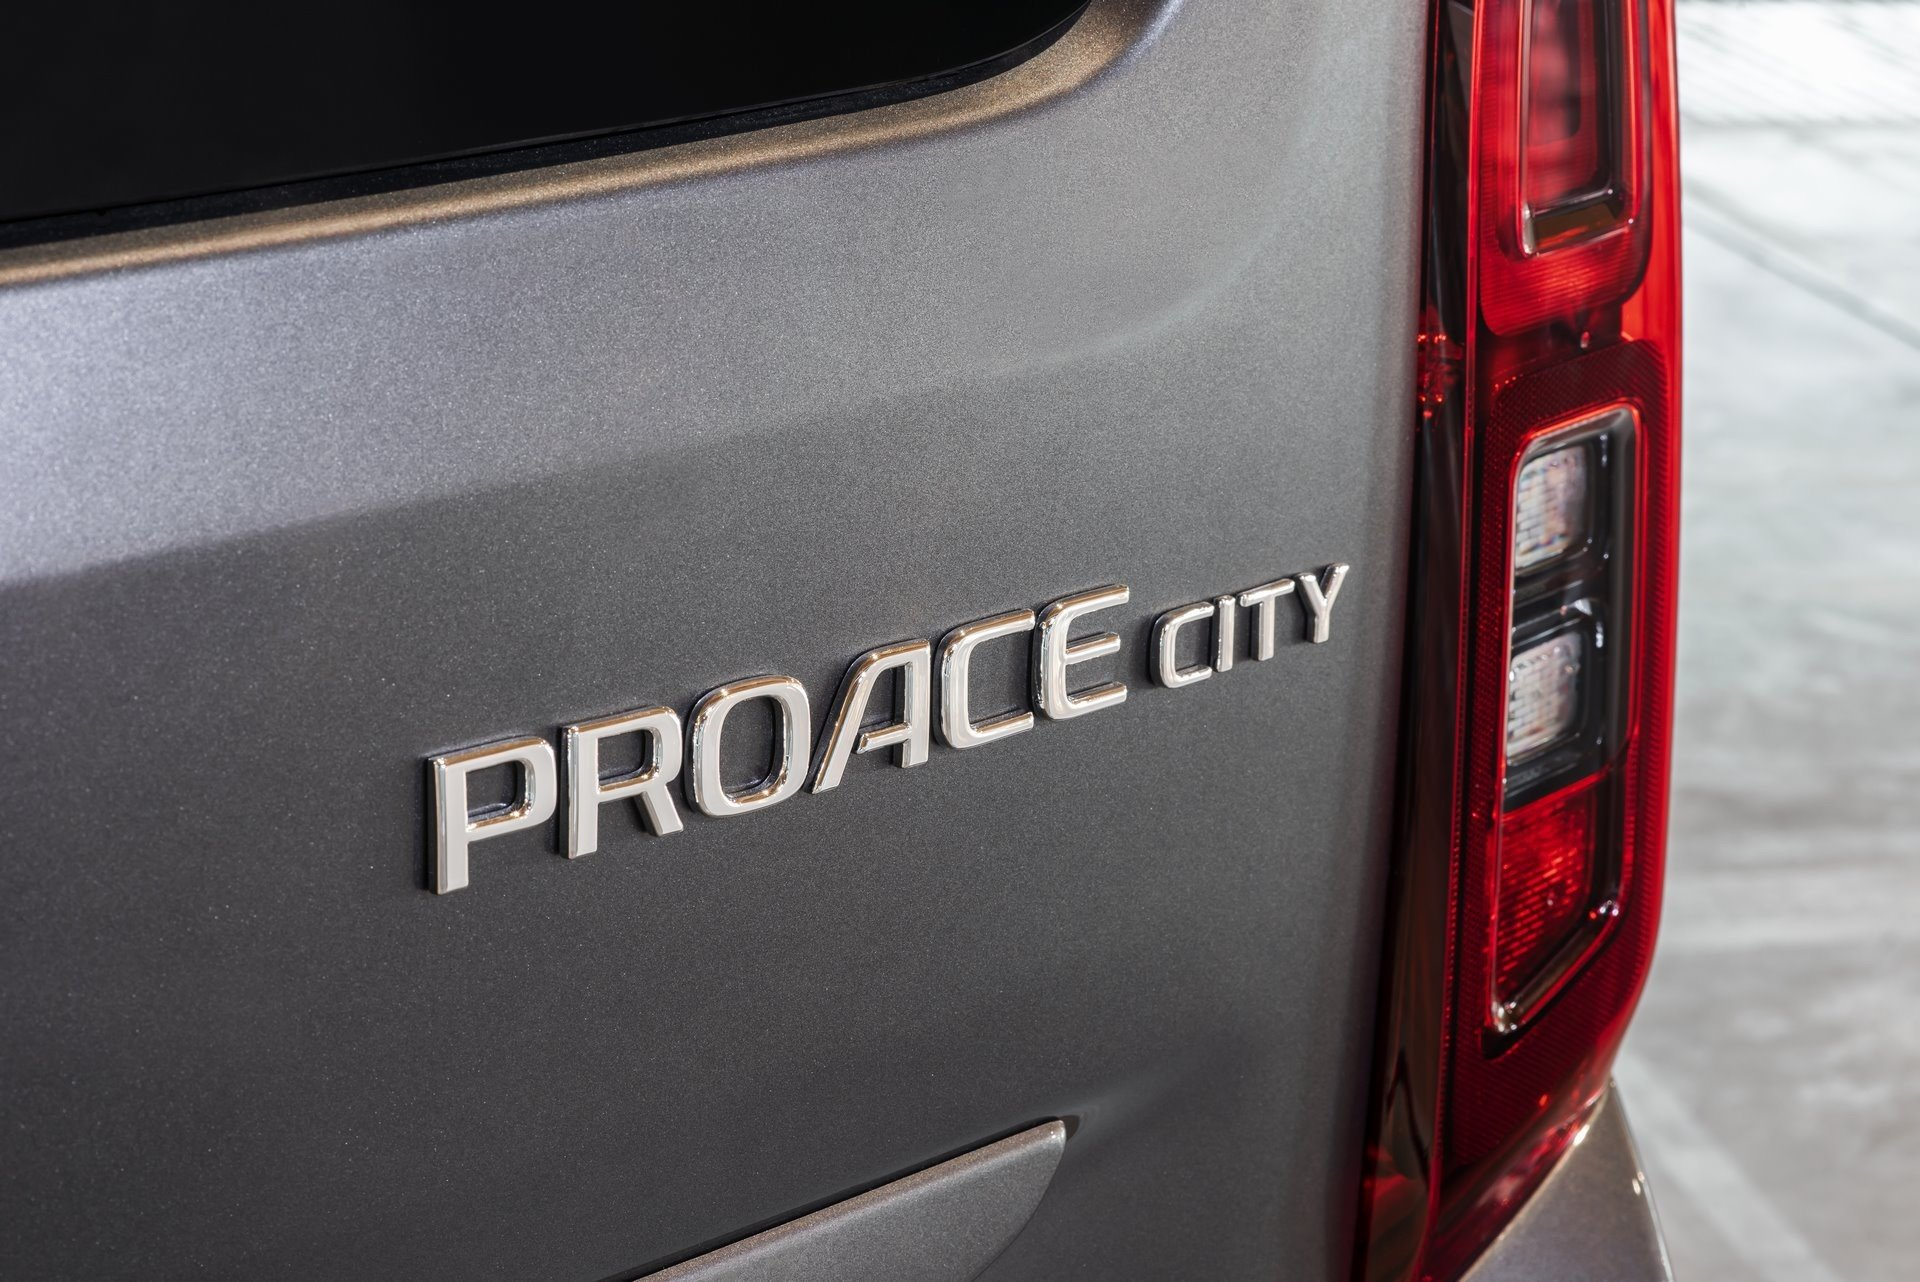 proace-city-verso-2019-040-785941